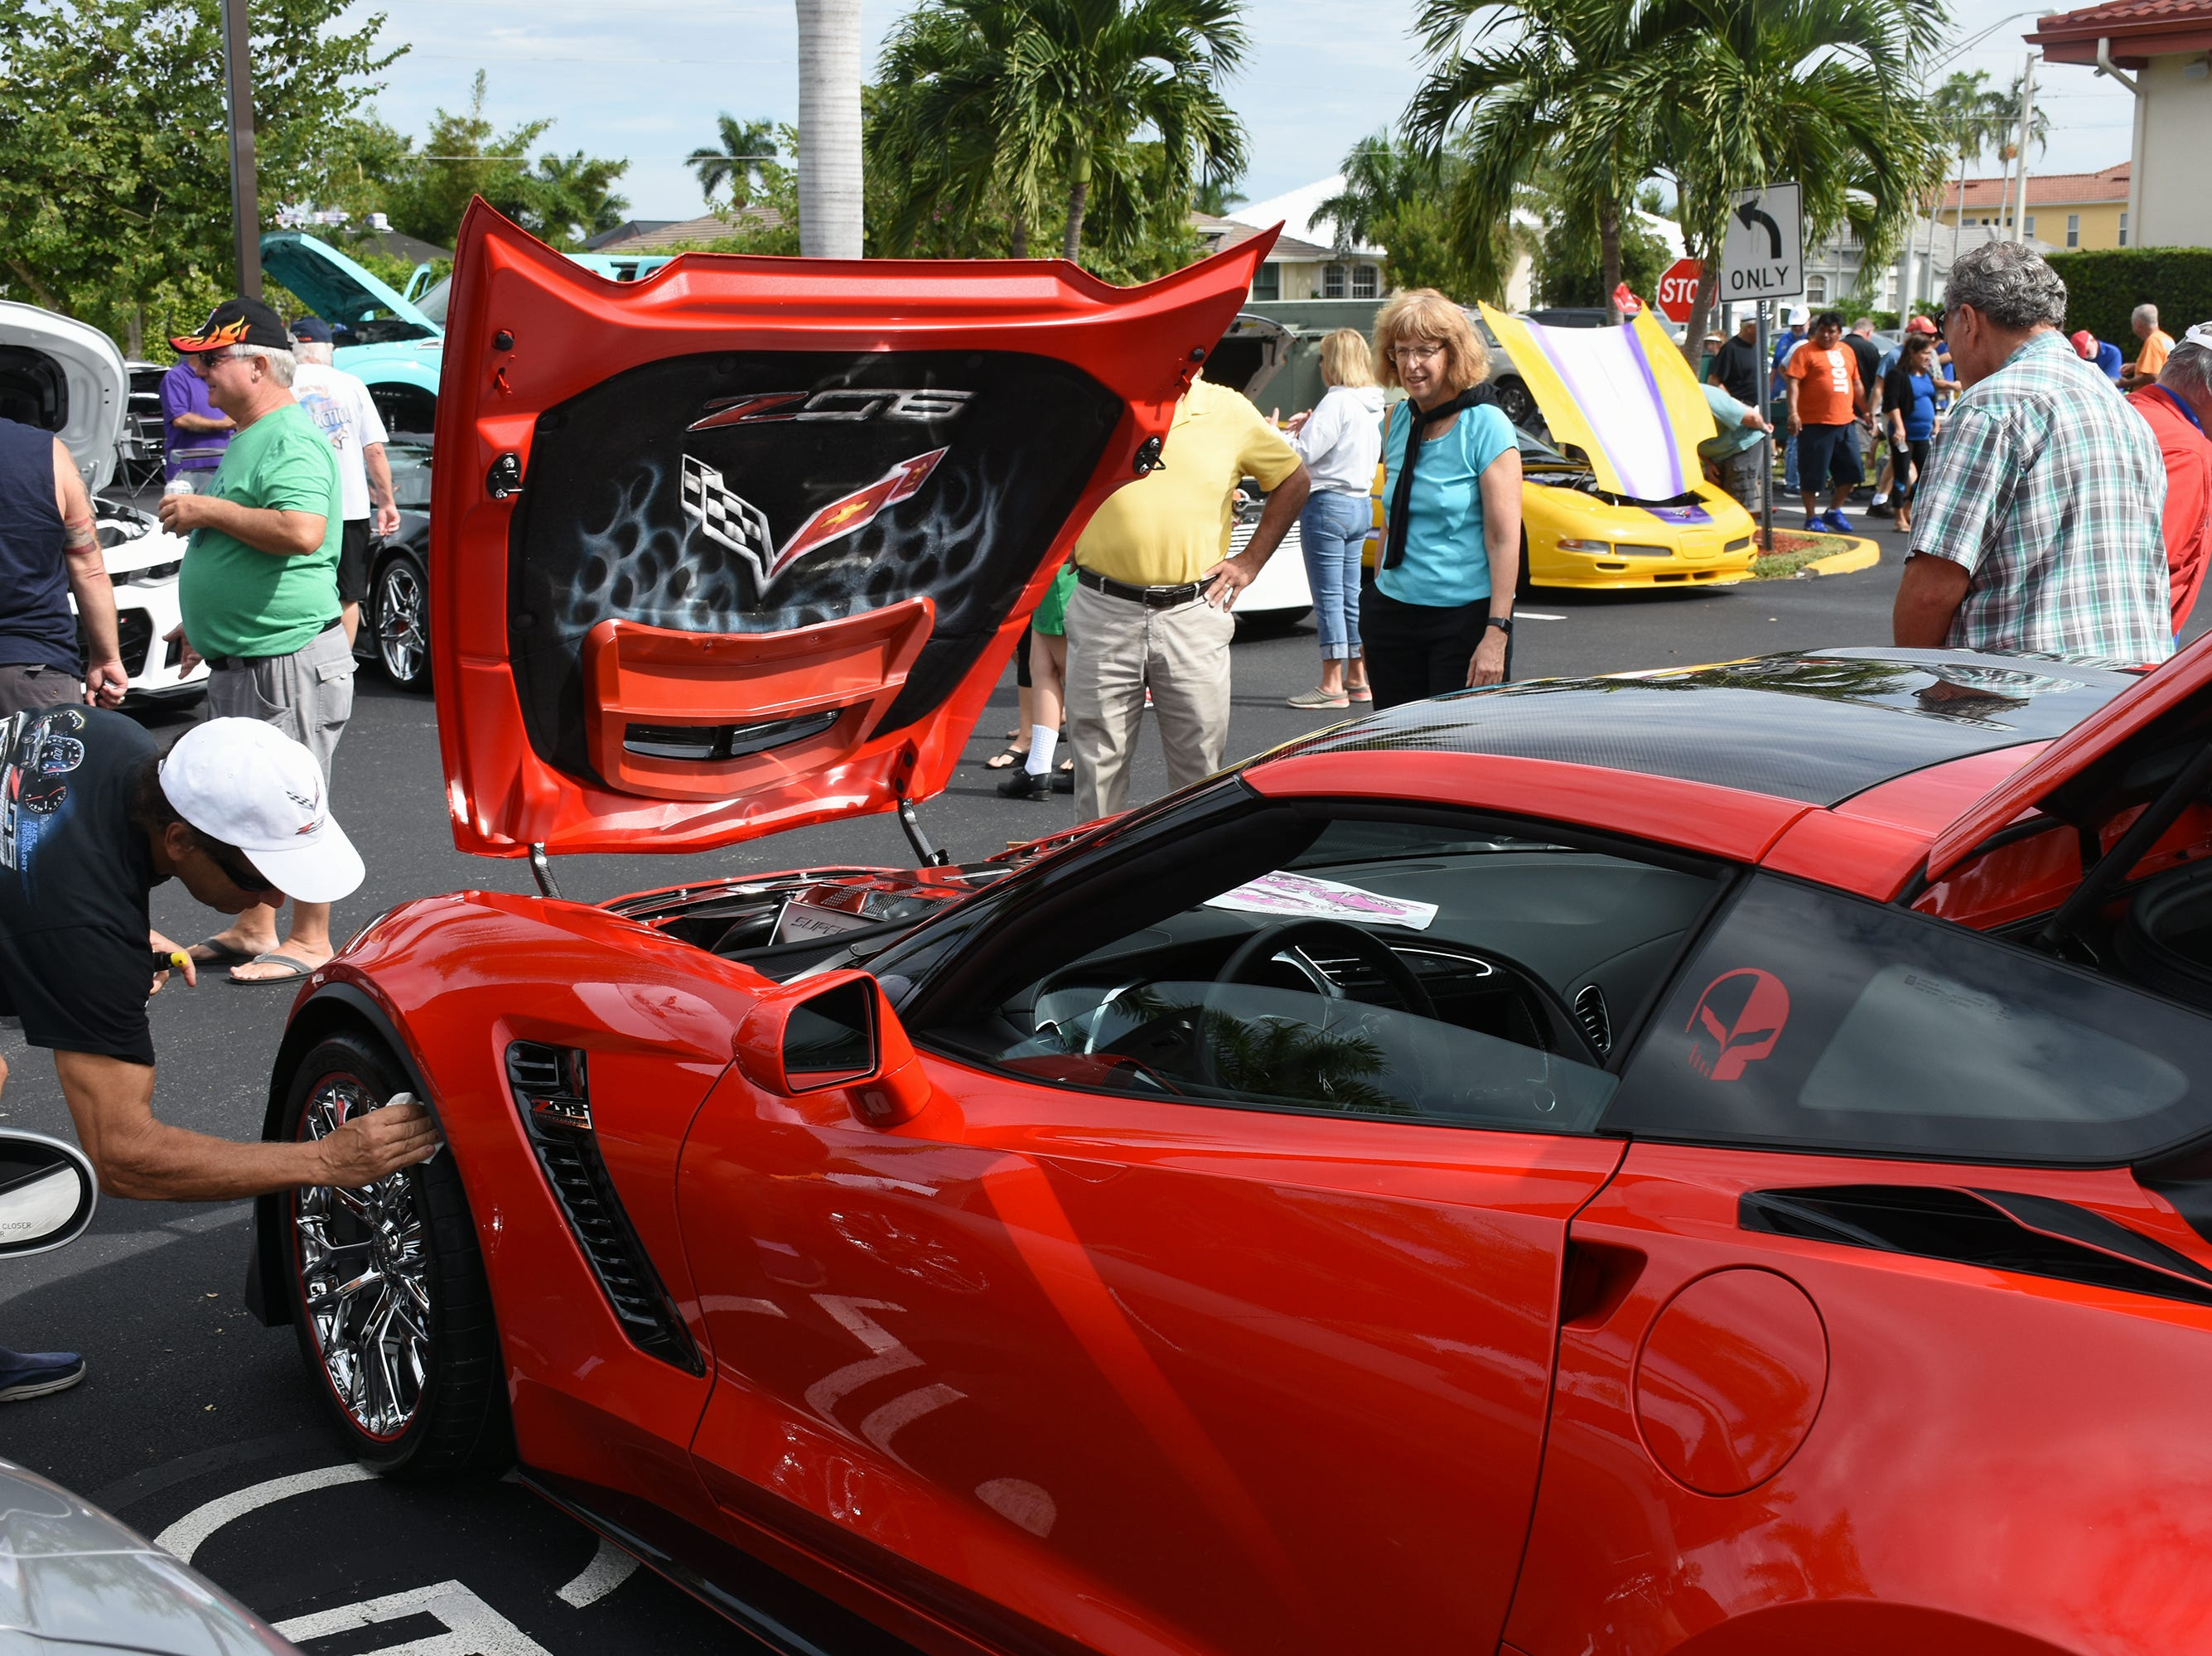 Tony Costantino of the Corvette Club finds a speck of dust on his 2016 Z 06. The Marco Island Knights of Columbus held their inaugural car show Saturday in the parking lot at San Marco Catholic Church.